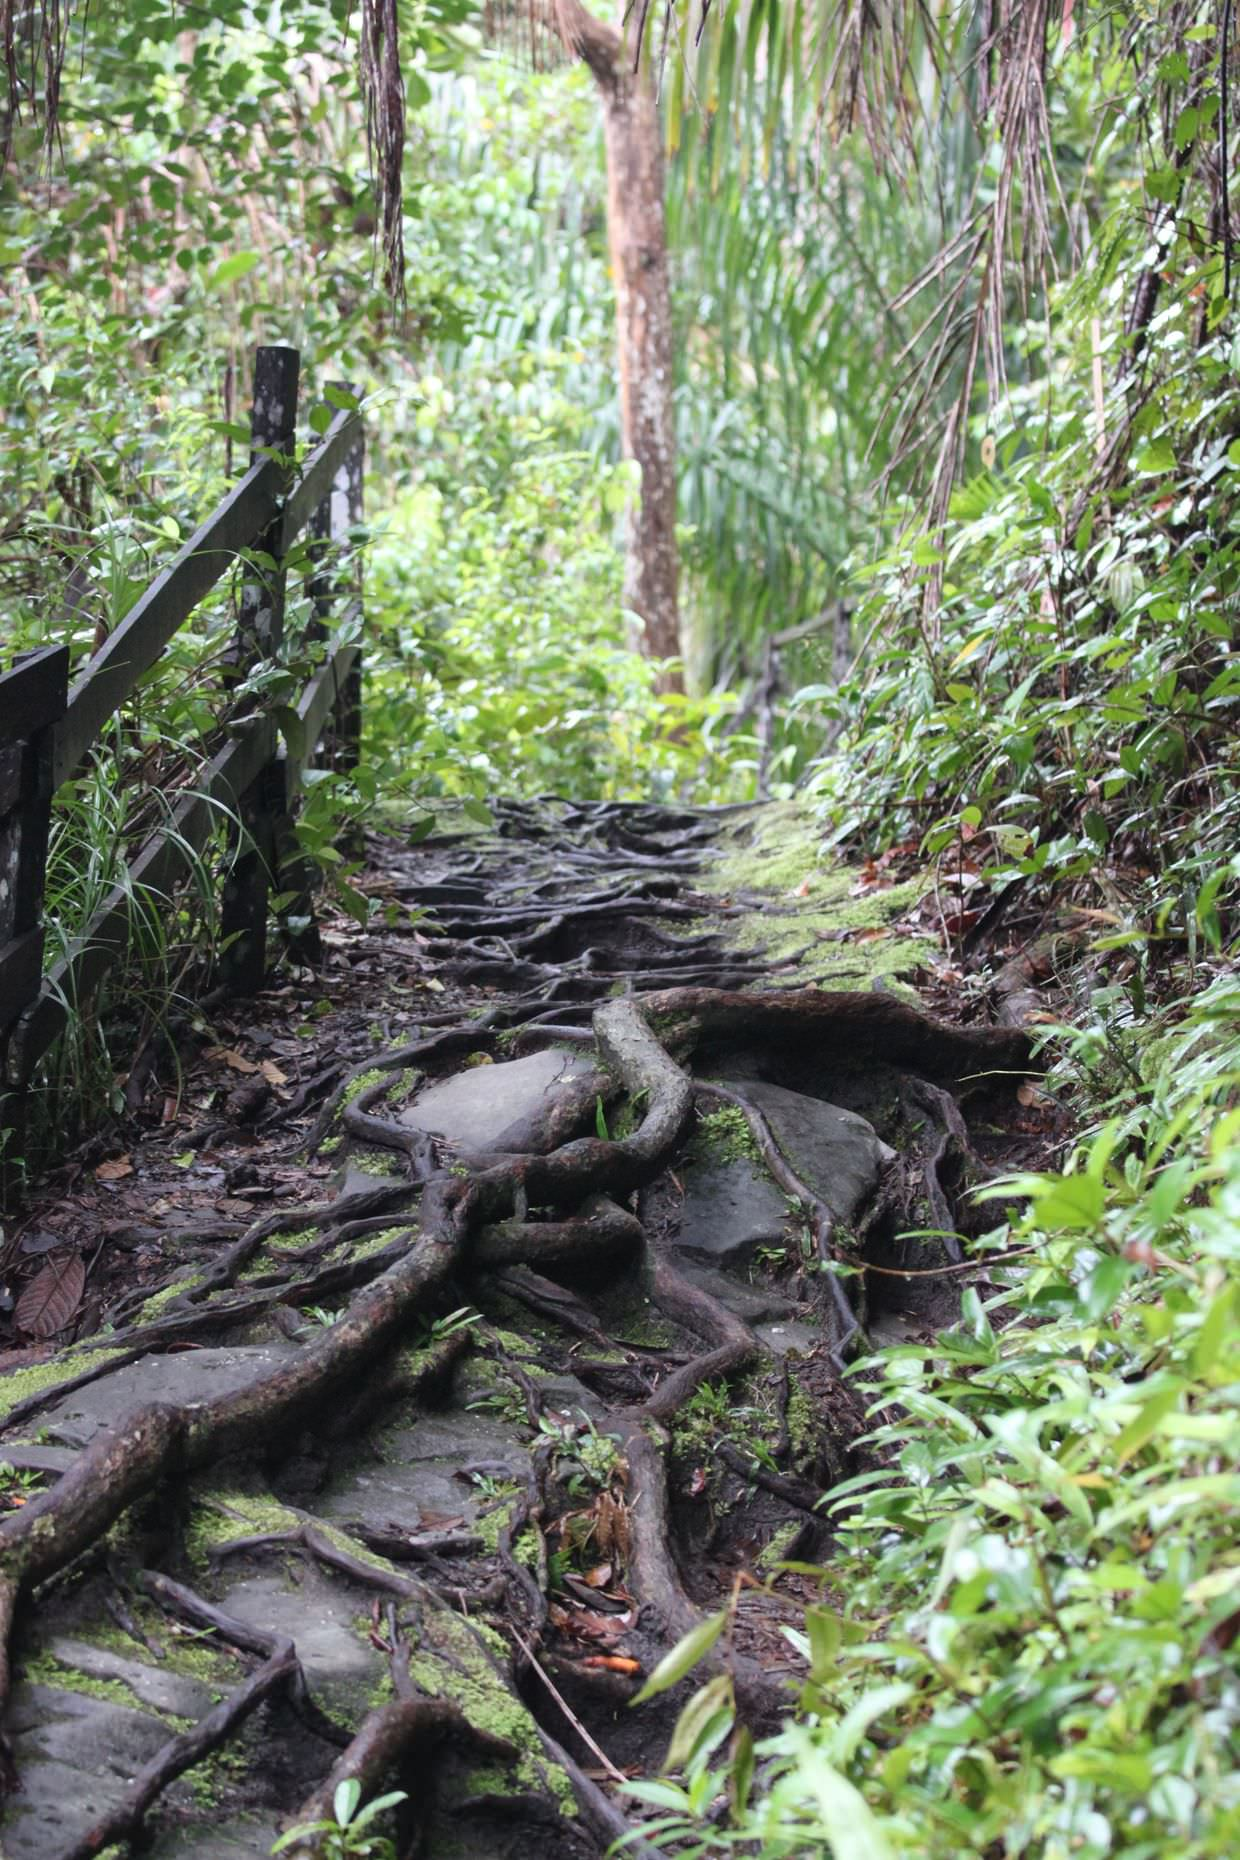 Gnarly trail with slippery tree roots